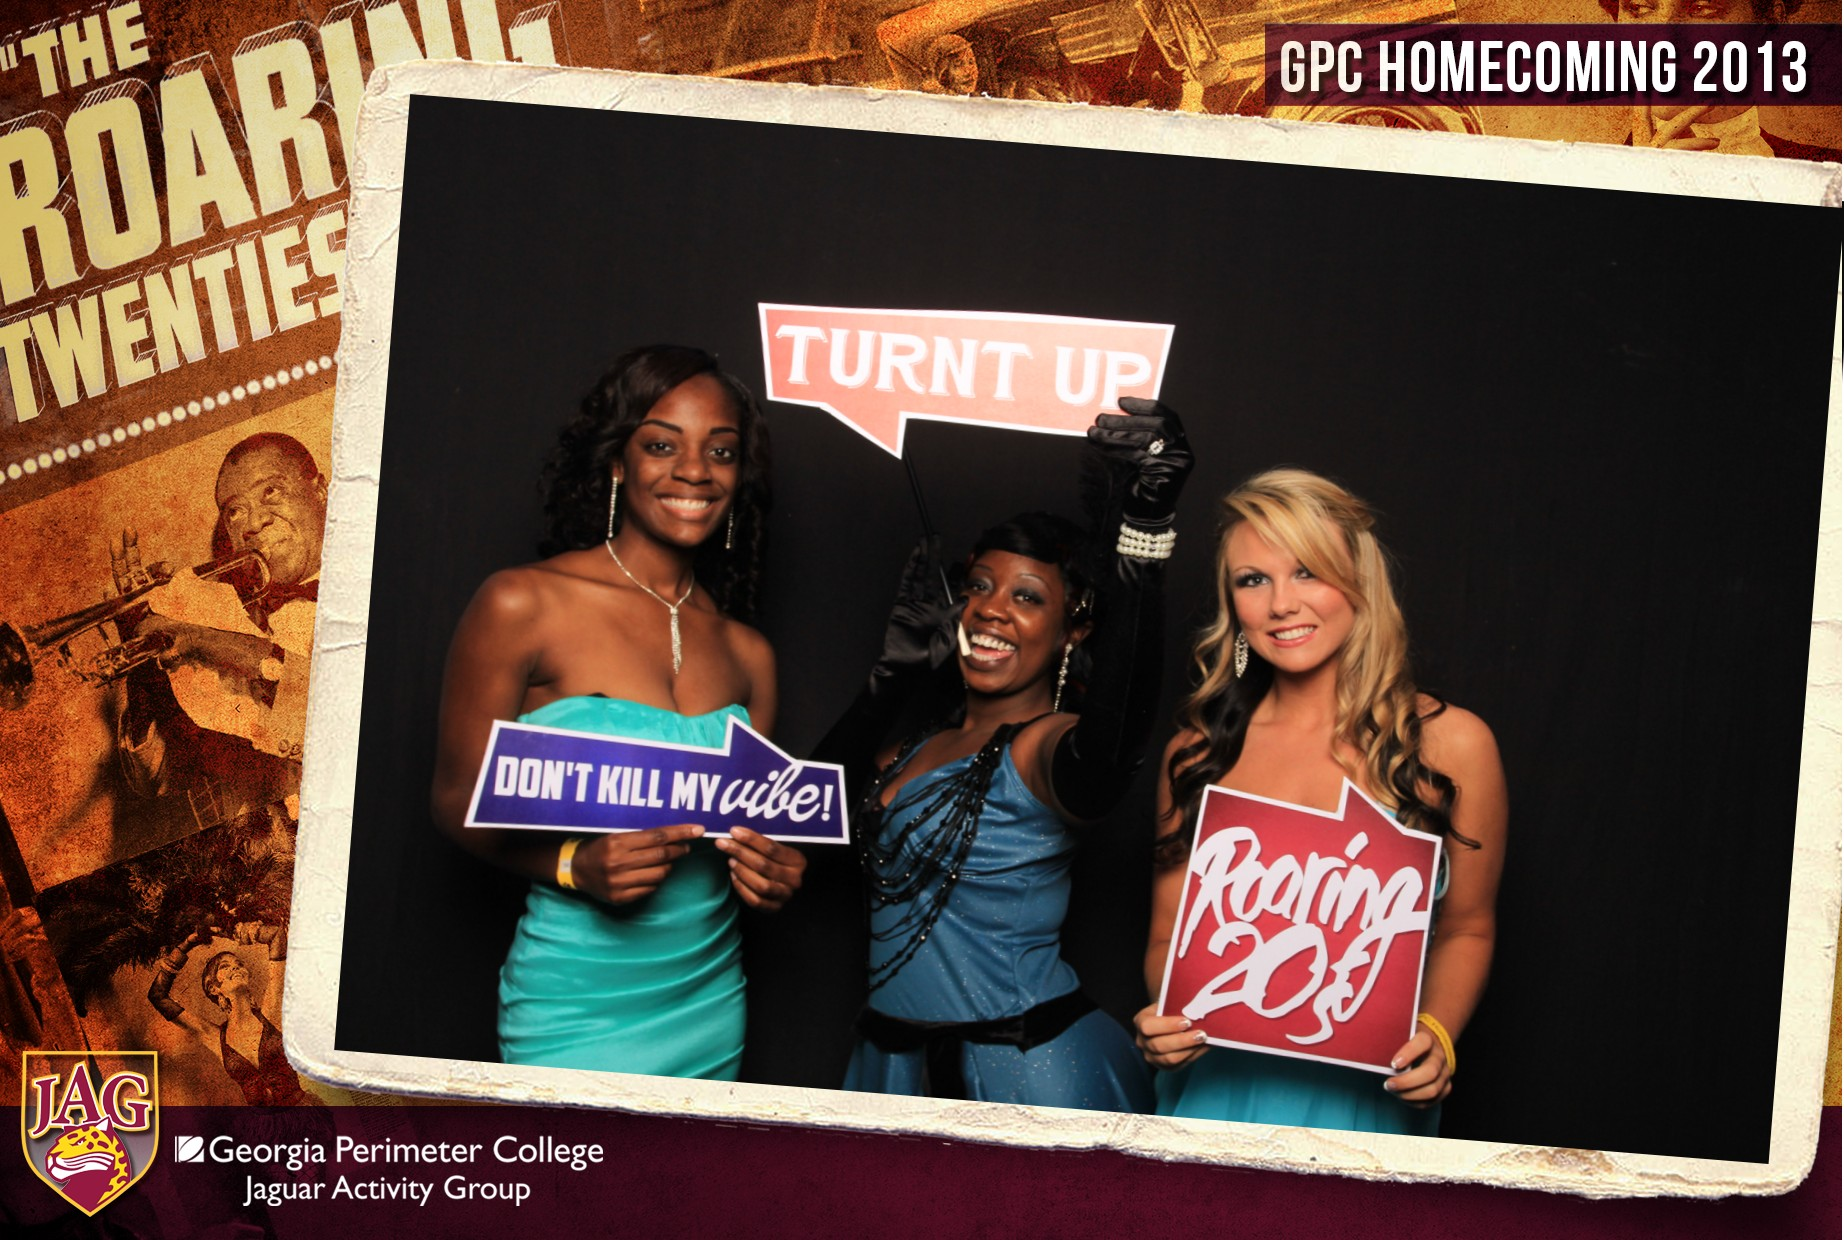 GPC Homecoming 2013